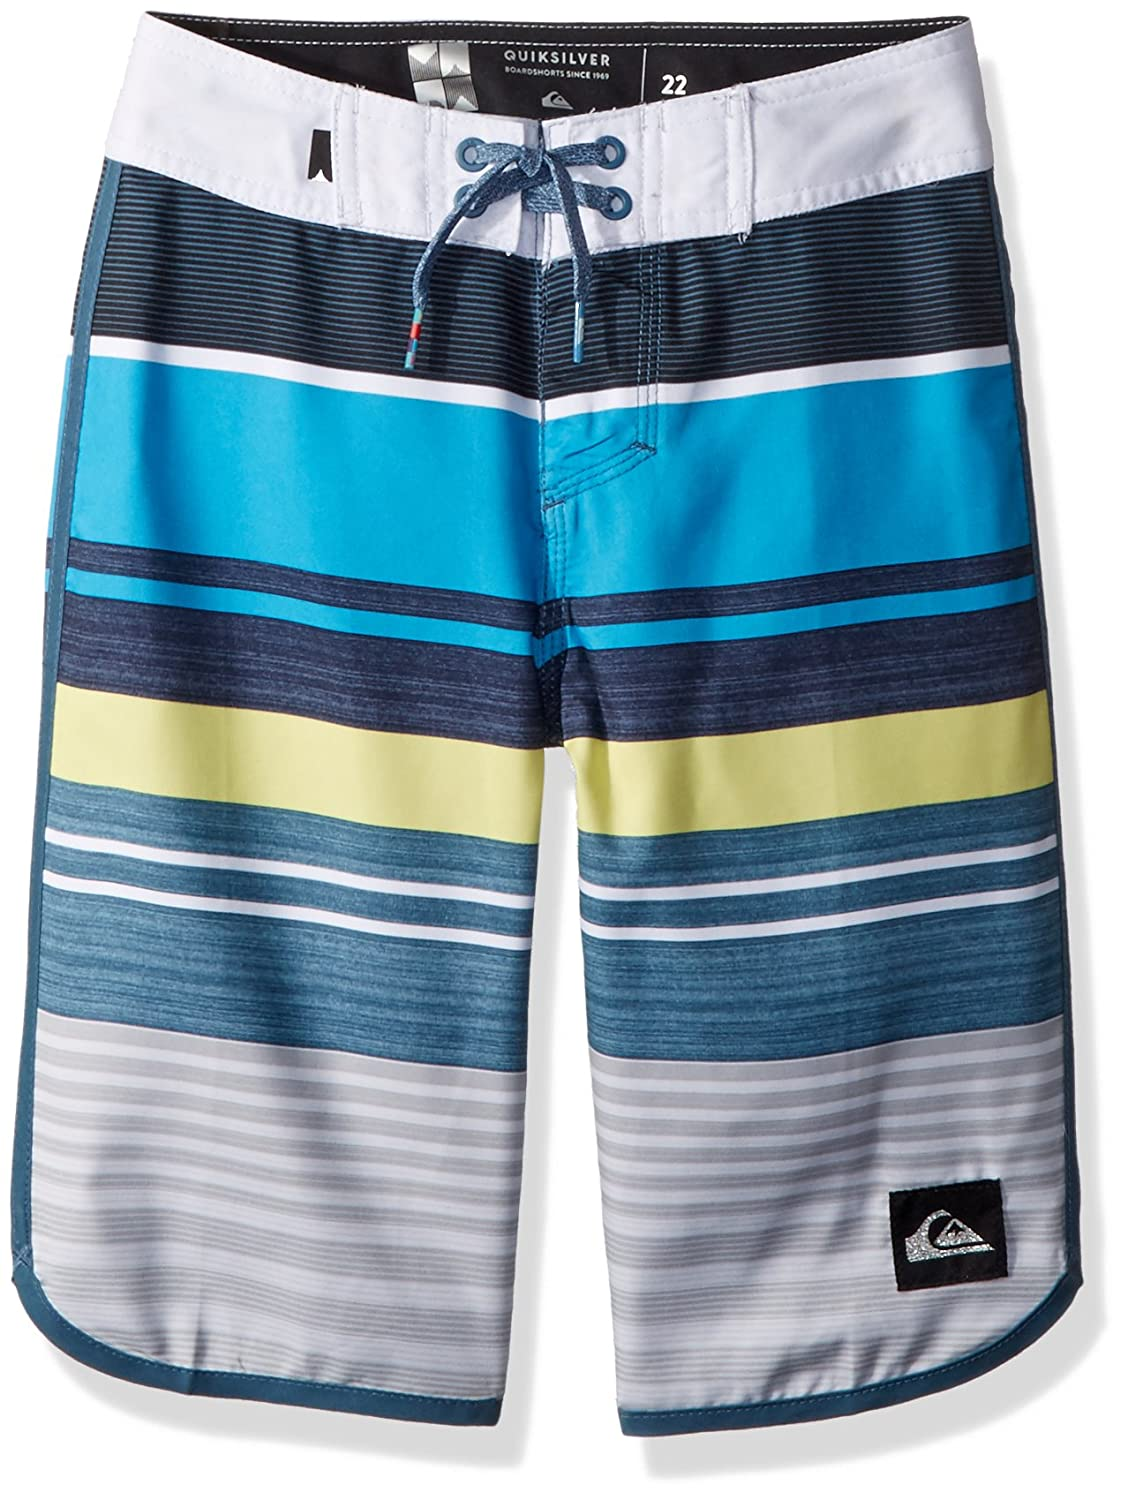 Quiksilver Boys' Big Eye Scallop Youth 19 Boardshort Swim Trunk EQBBS03255